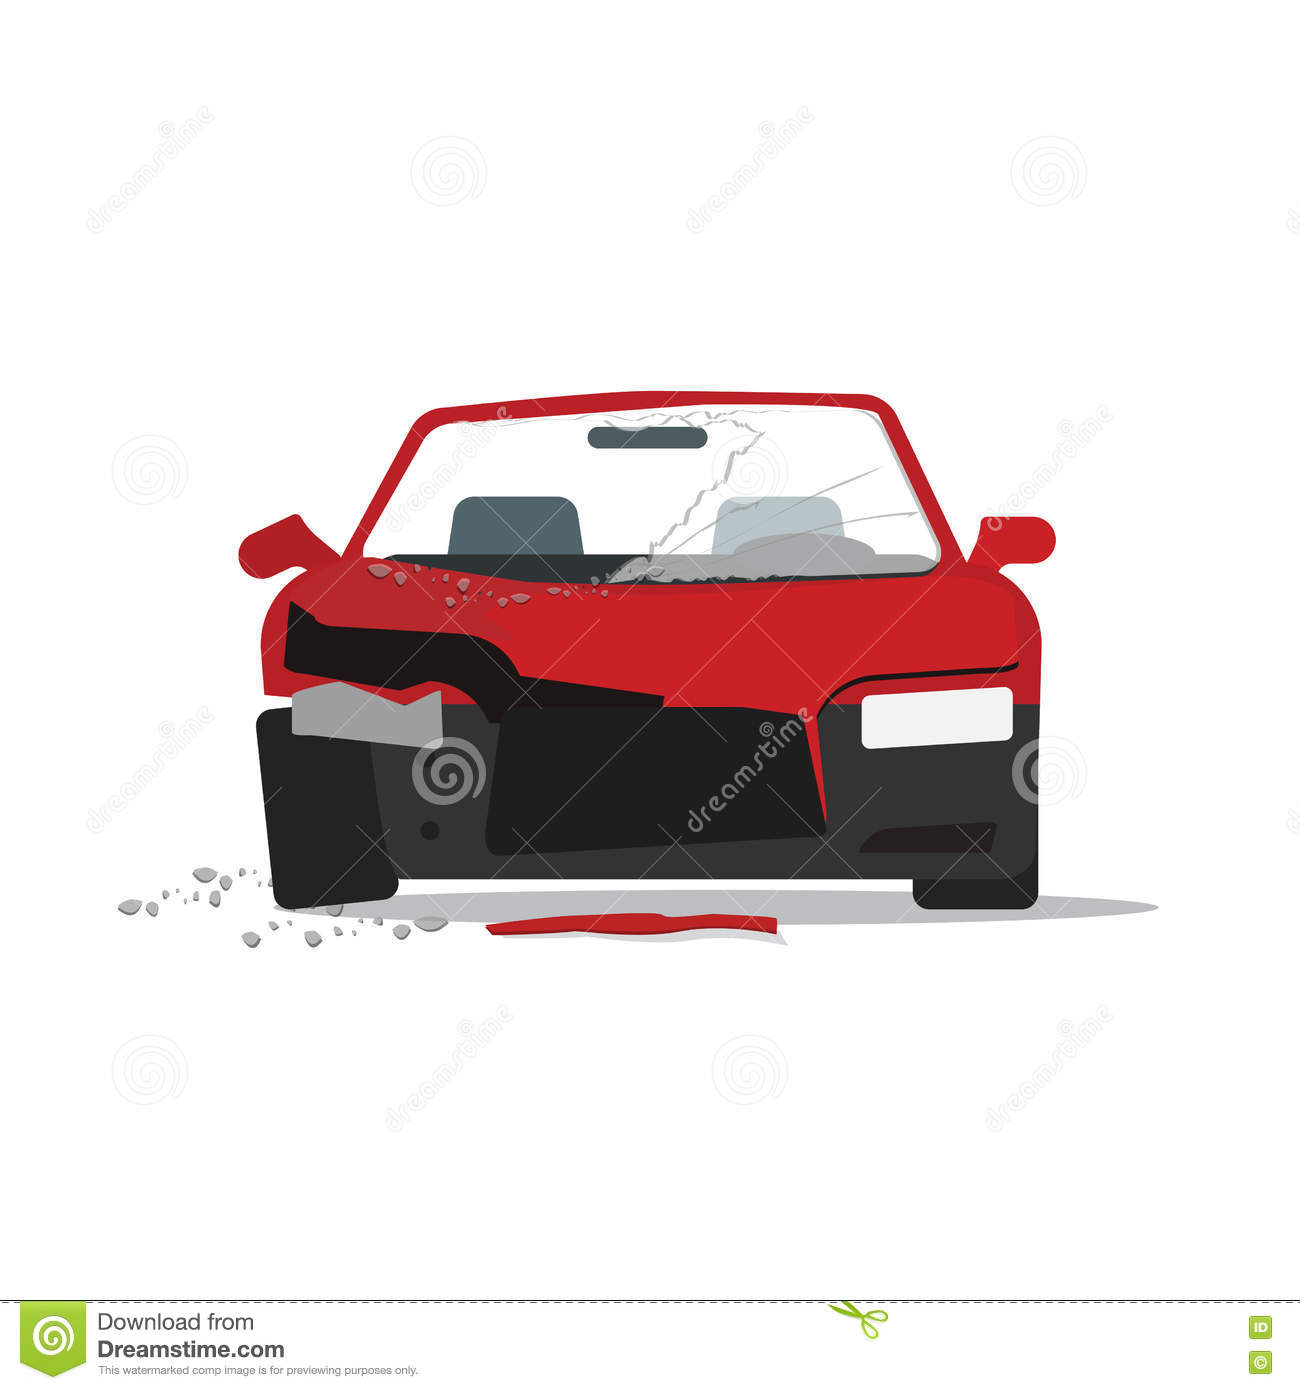 Home Design 3d Keeps Crashing: Car Accident Isolated Icon Design Stock Illustration